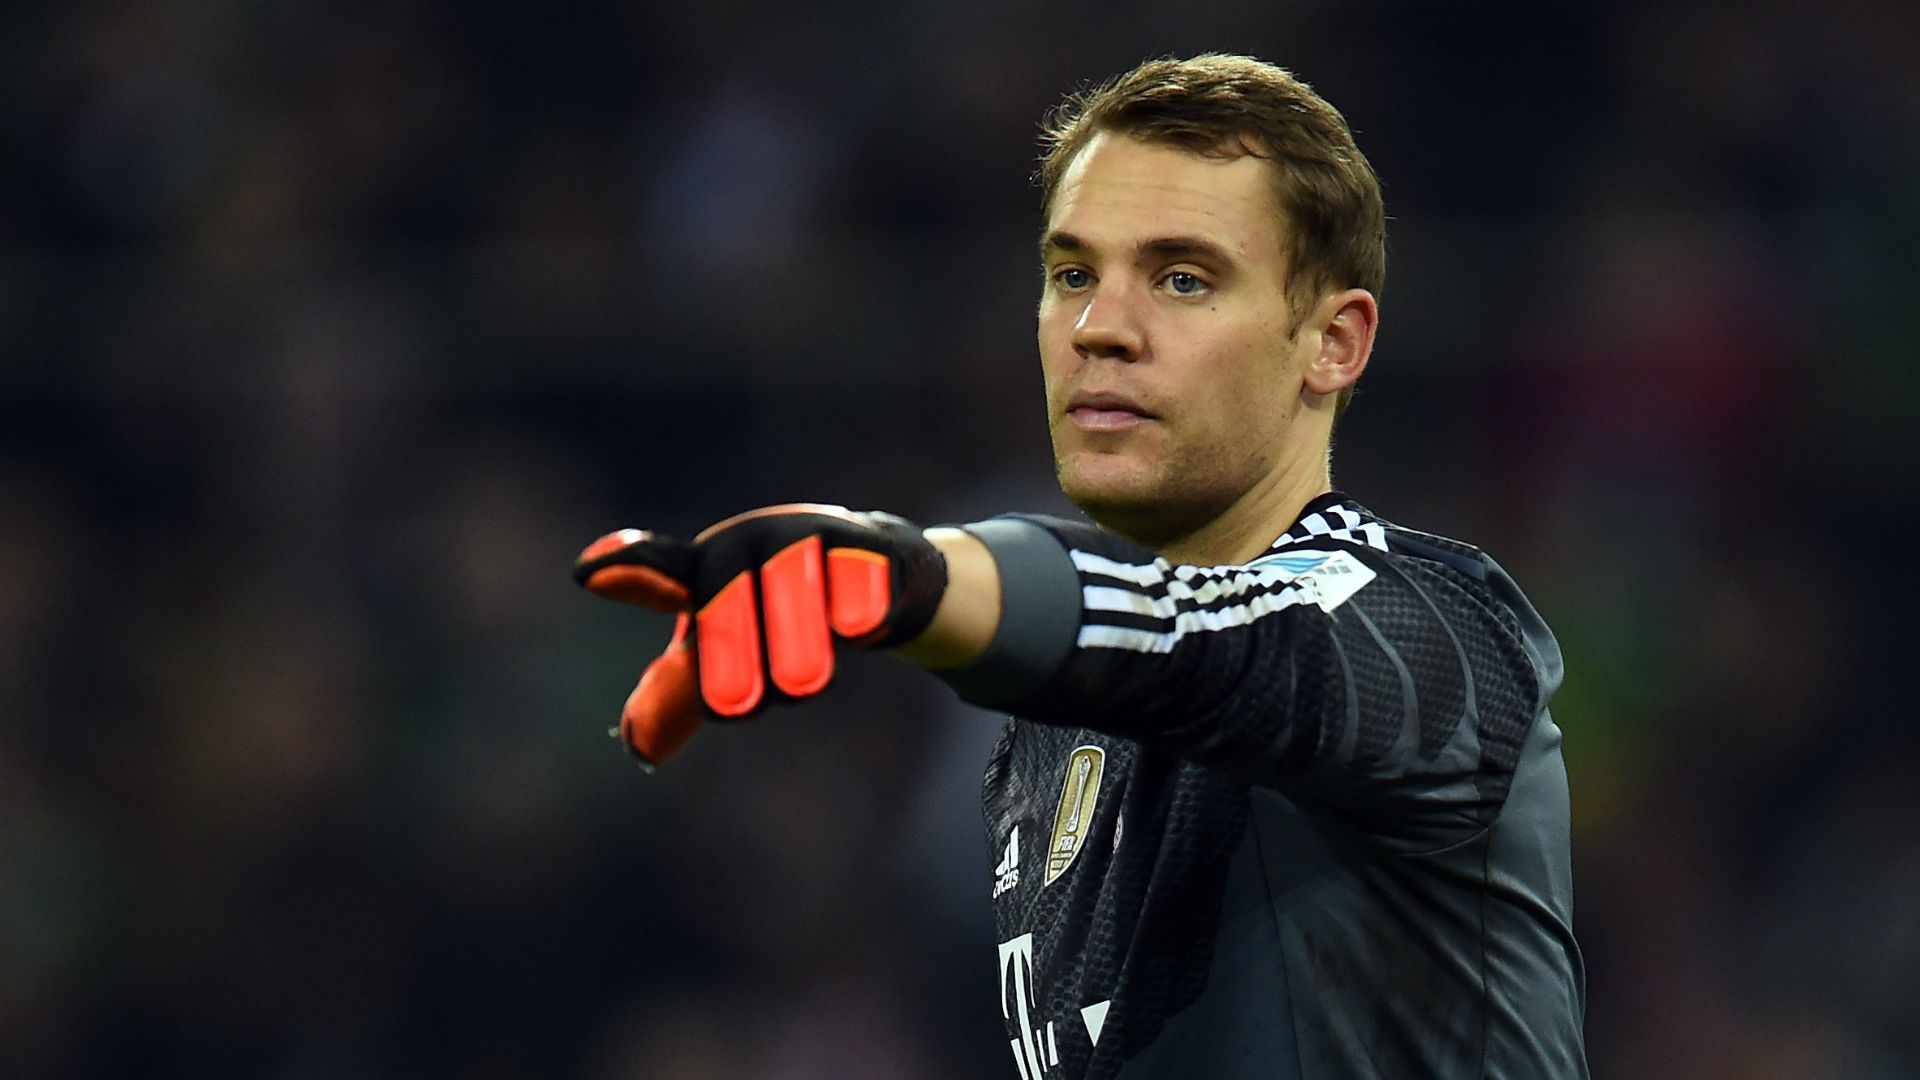 Manuel Neuer Borussia Hd Mobile Desktop Images